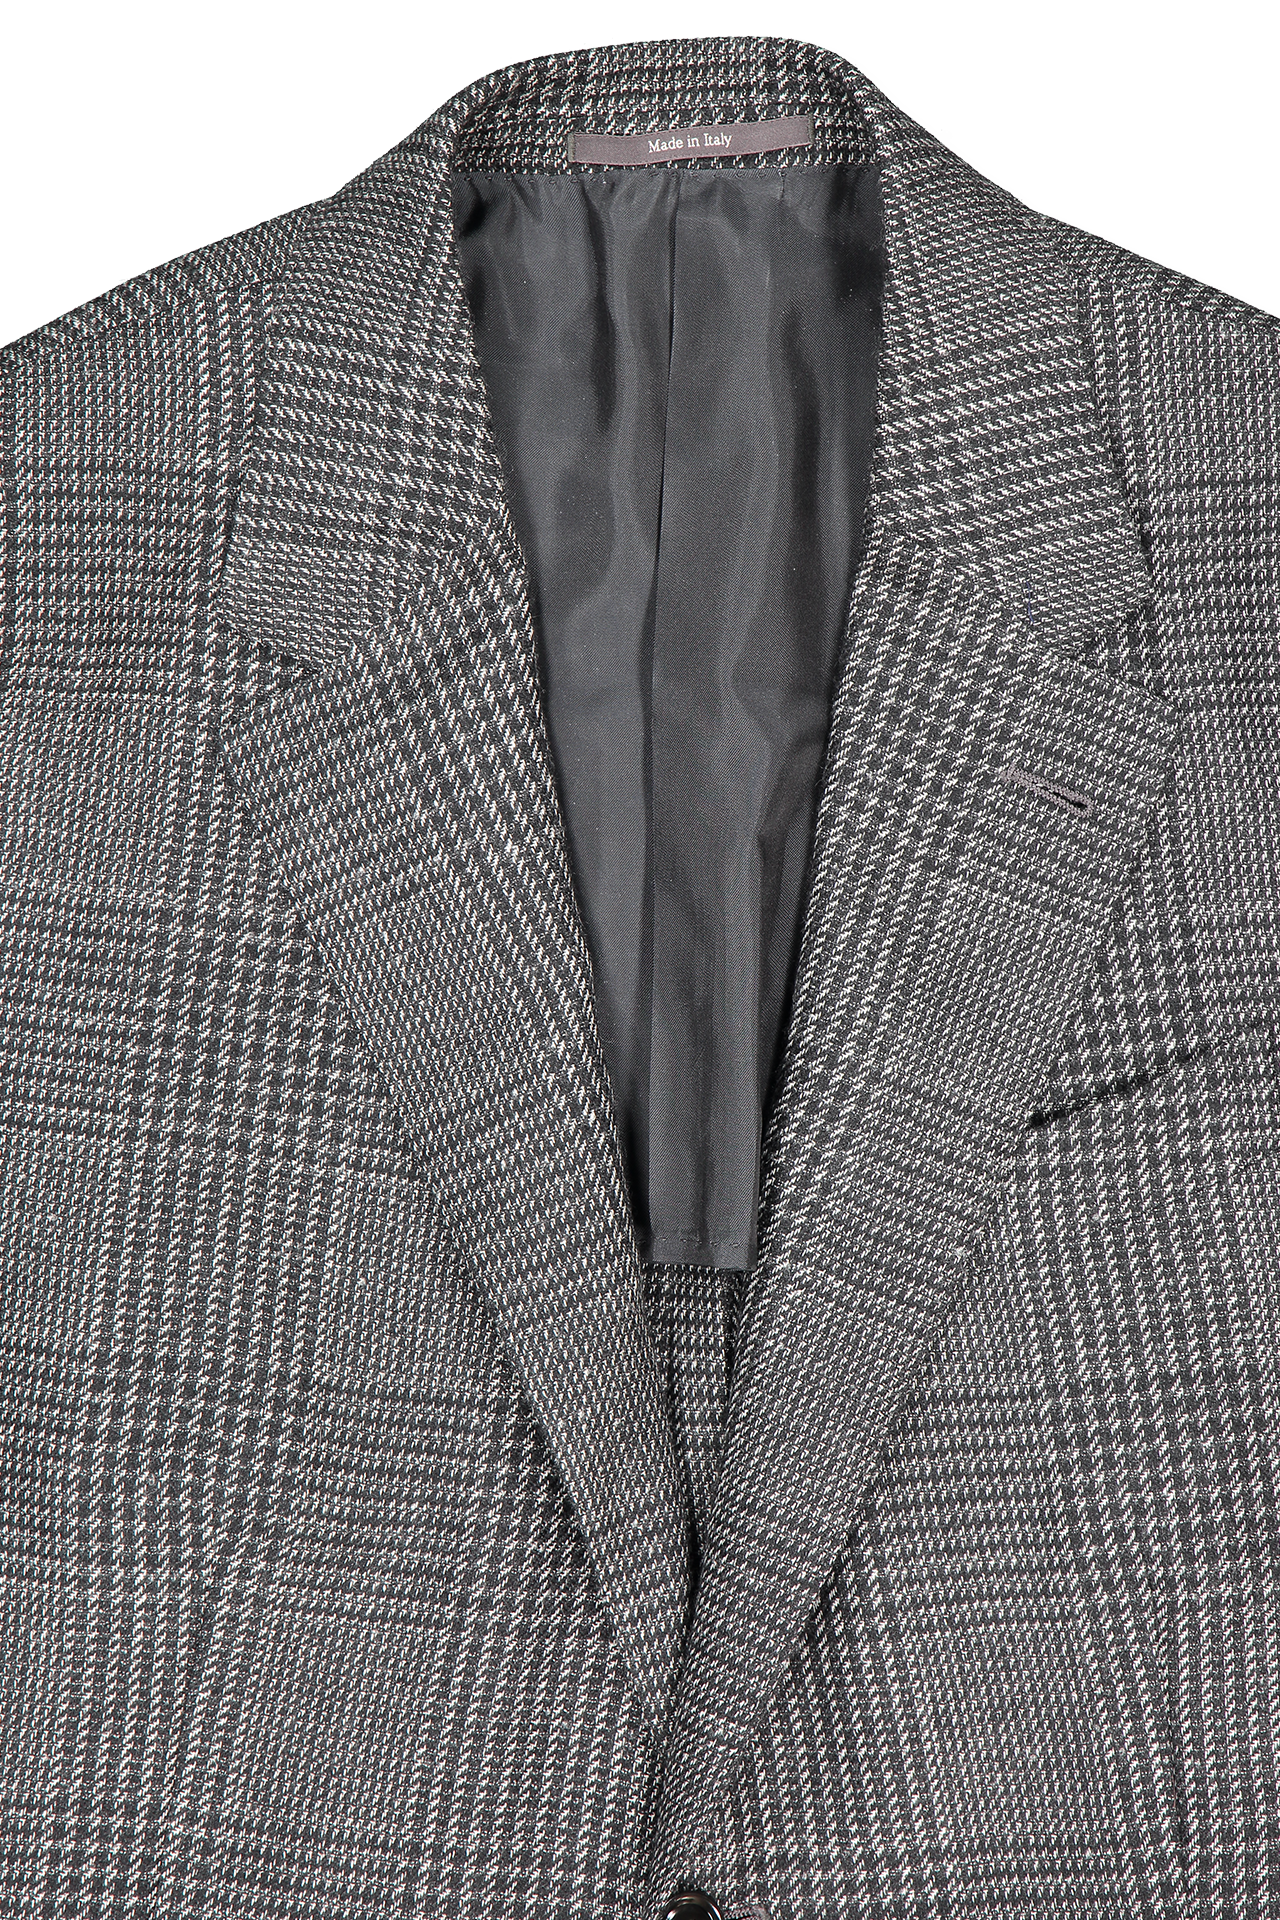 Front collar and lapel detail image of Ermenegildo Zegna Grey Plaid Sport Coat